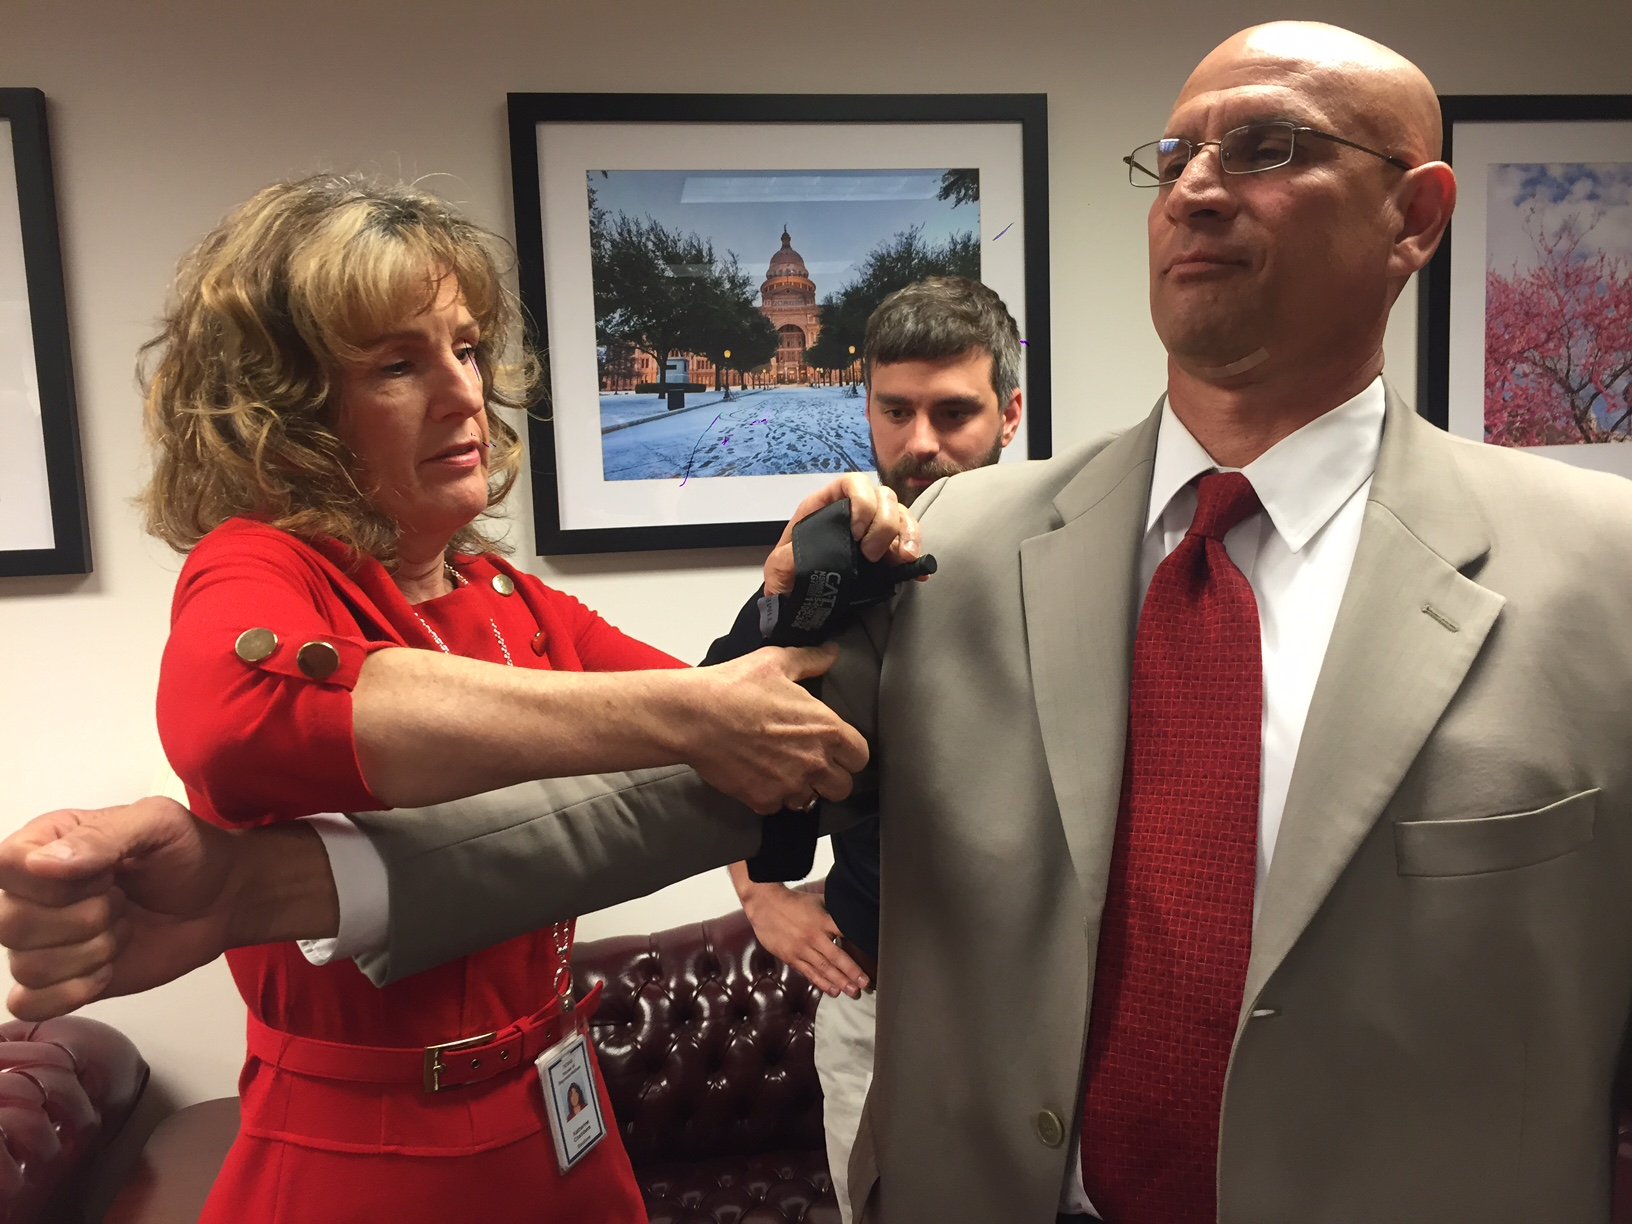 Application of a tourniquet to control bleeding demonstrated at the Stop the Bleed event at the State Capitol, Monday, May 9_282851